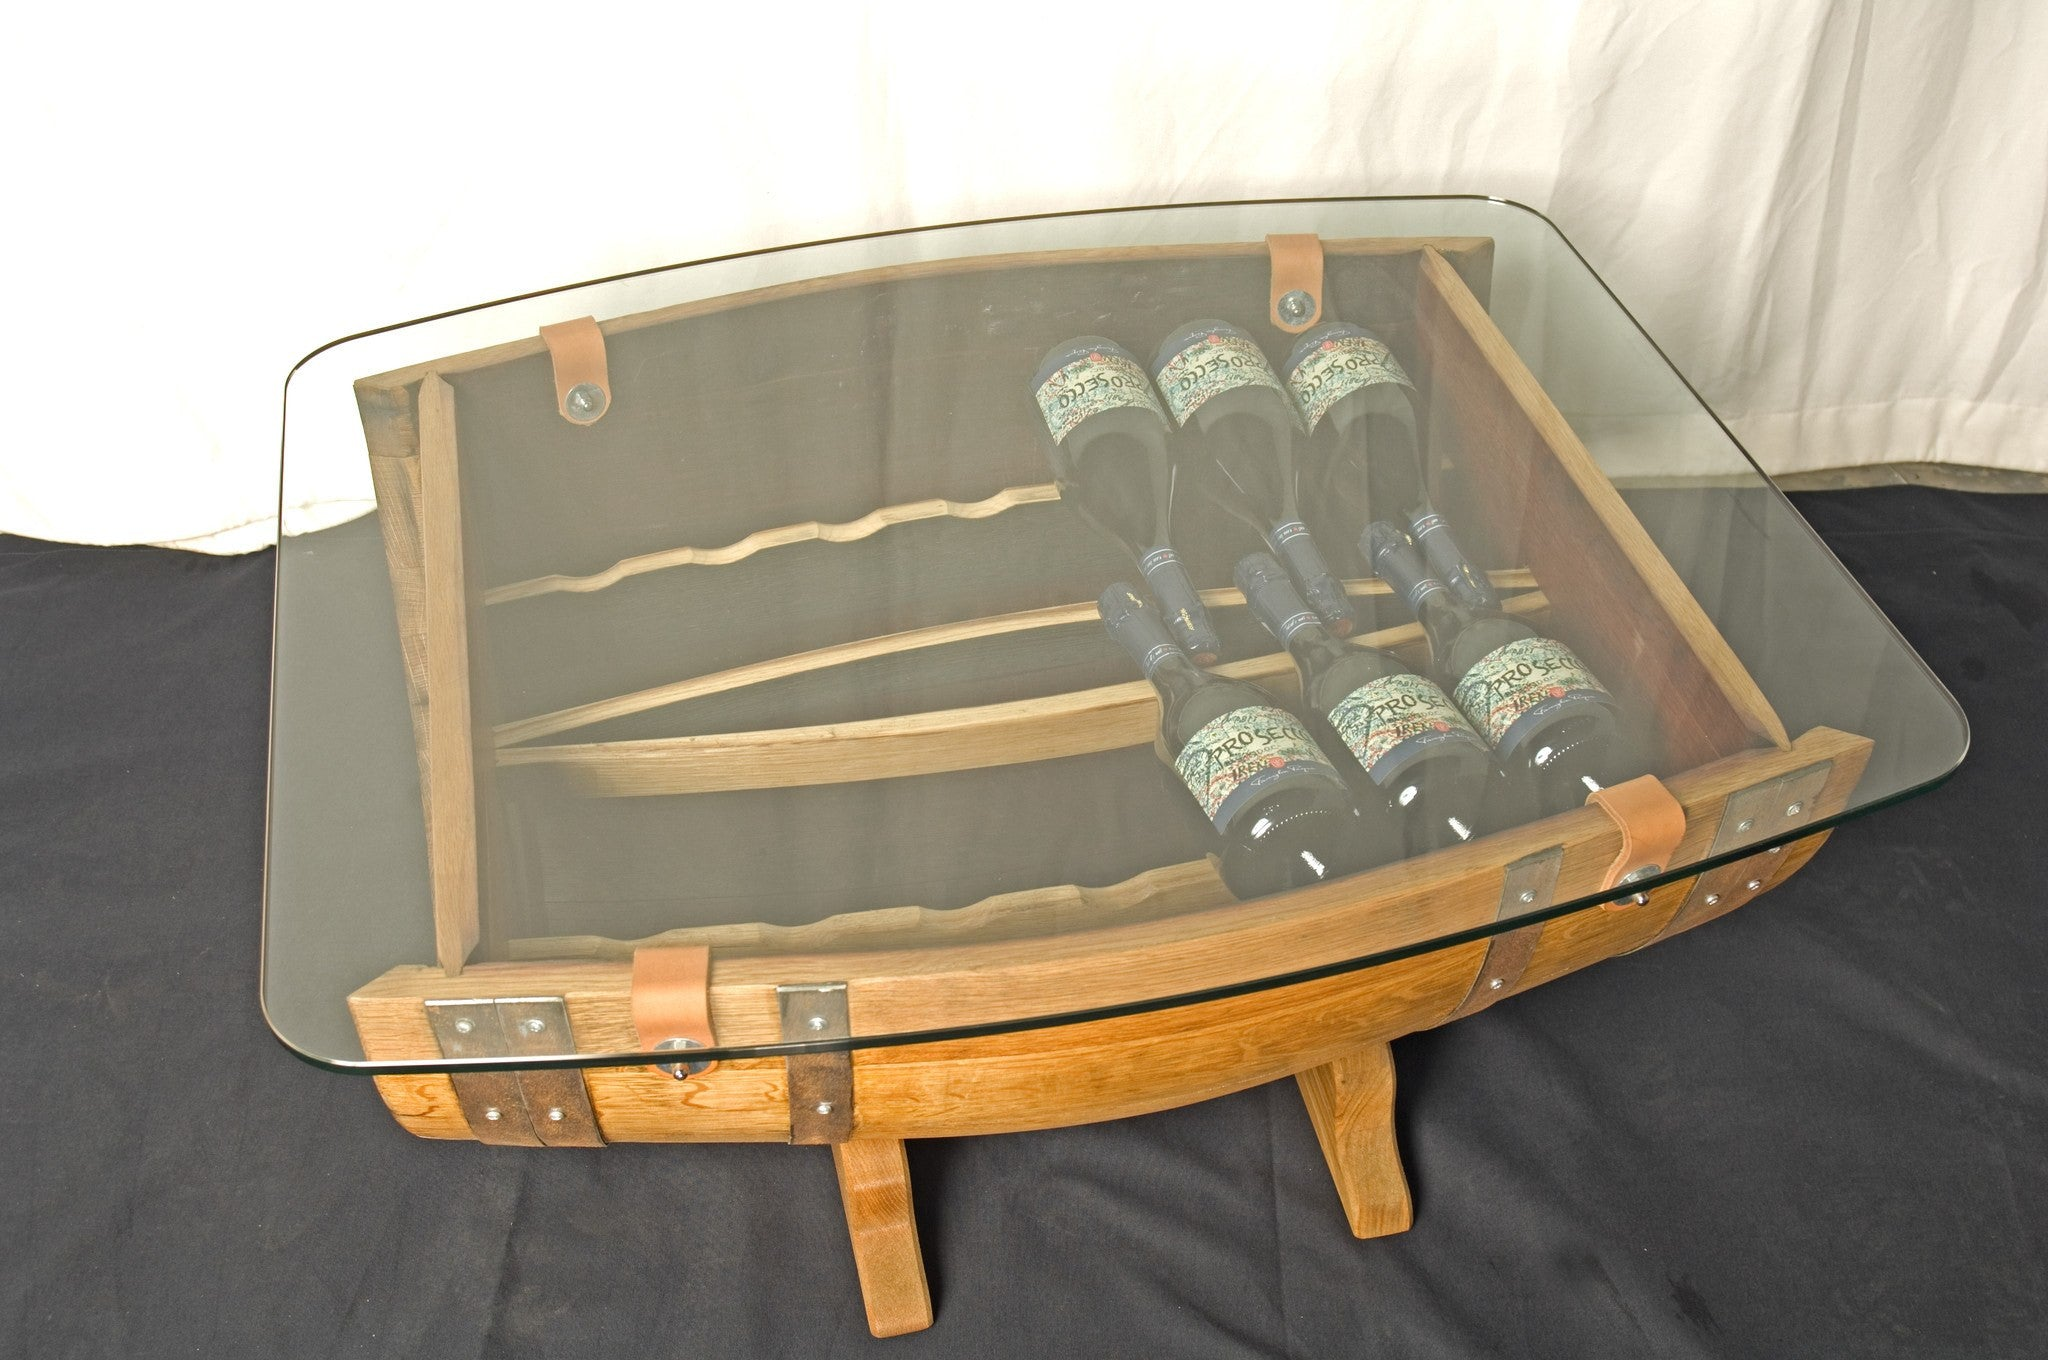 The Griffiths Barrel Coffee Table Wine Rack 14 bottle The